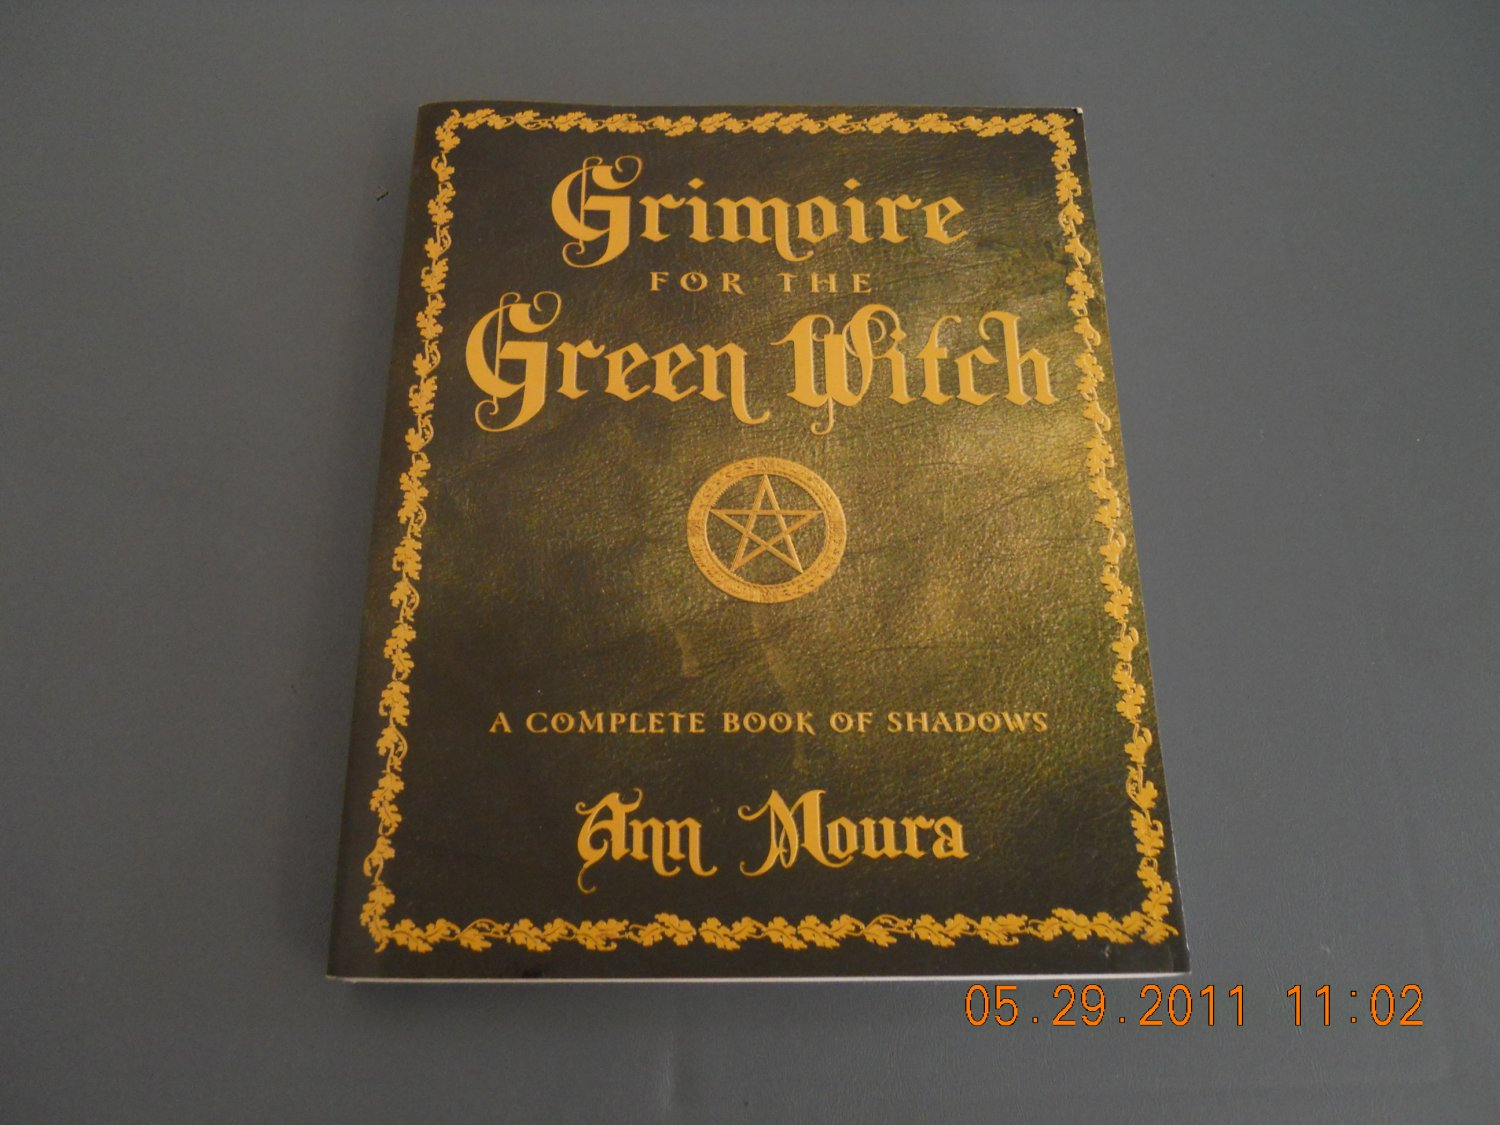 Grimoire for the Green Witch: A Complete Book of Shadows paperback